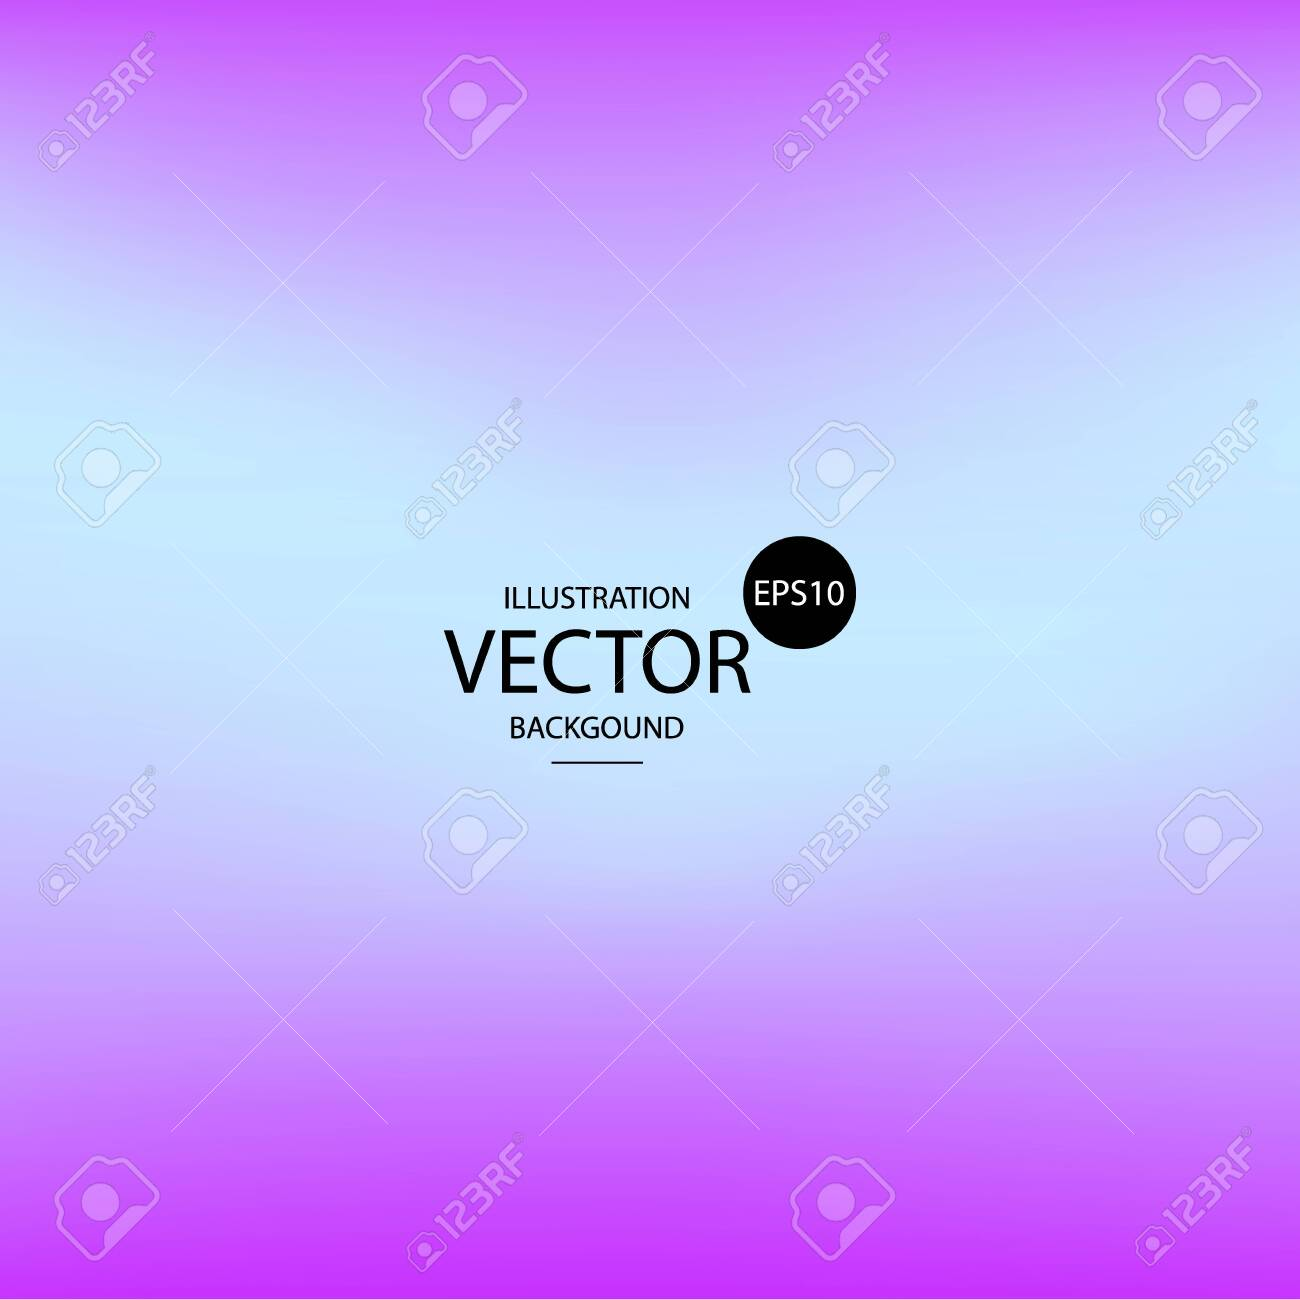 Abstract blur gradient background with trend pastel pink, purple, violet and blue colors for wallpapers, web, presentations and prints. Vector illustration. - 146562711